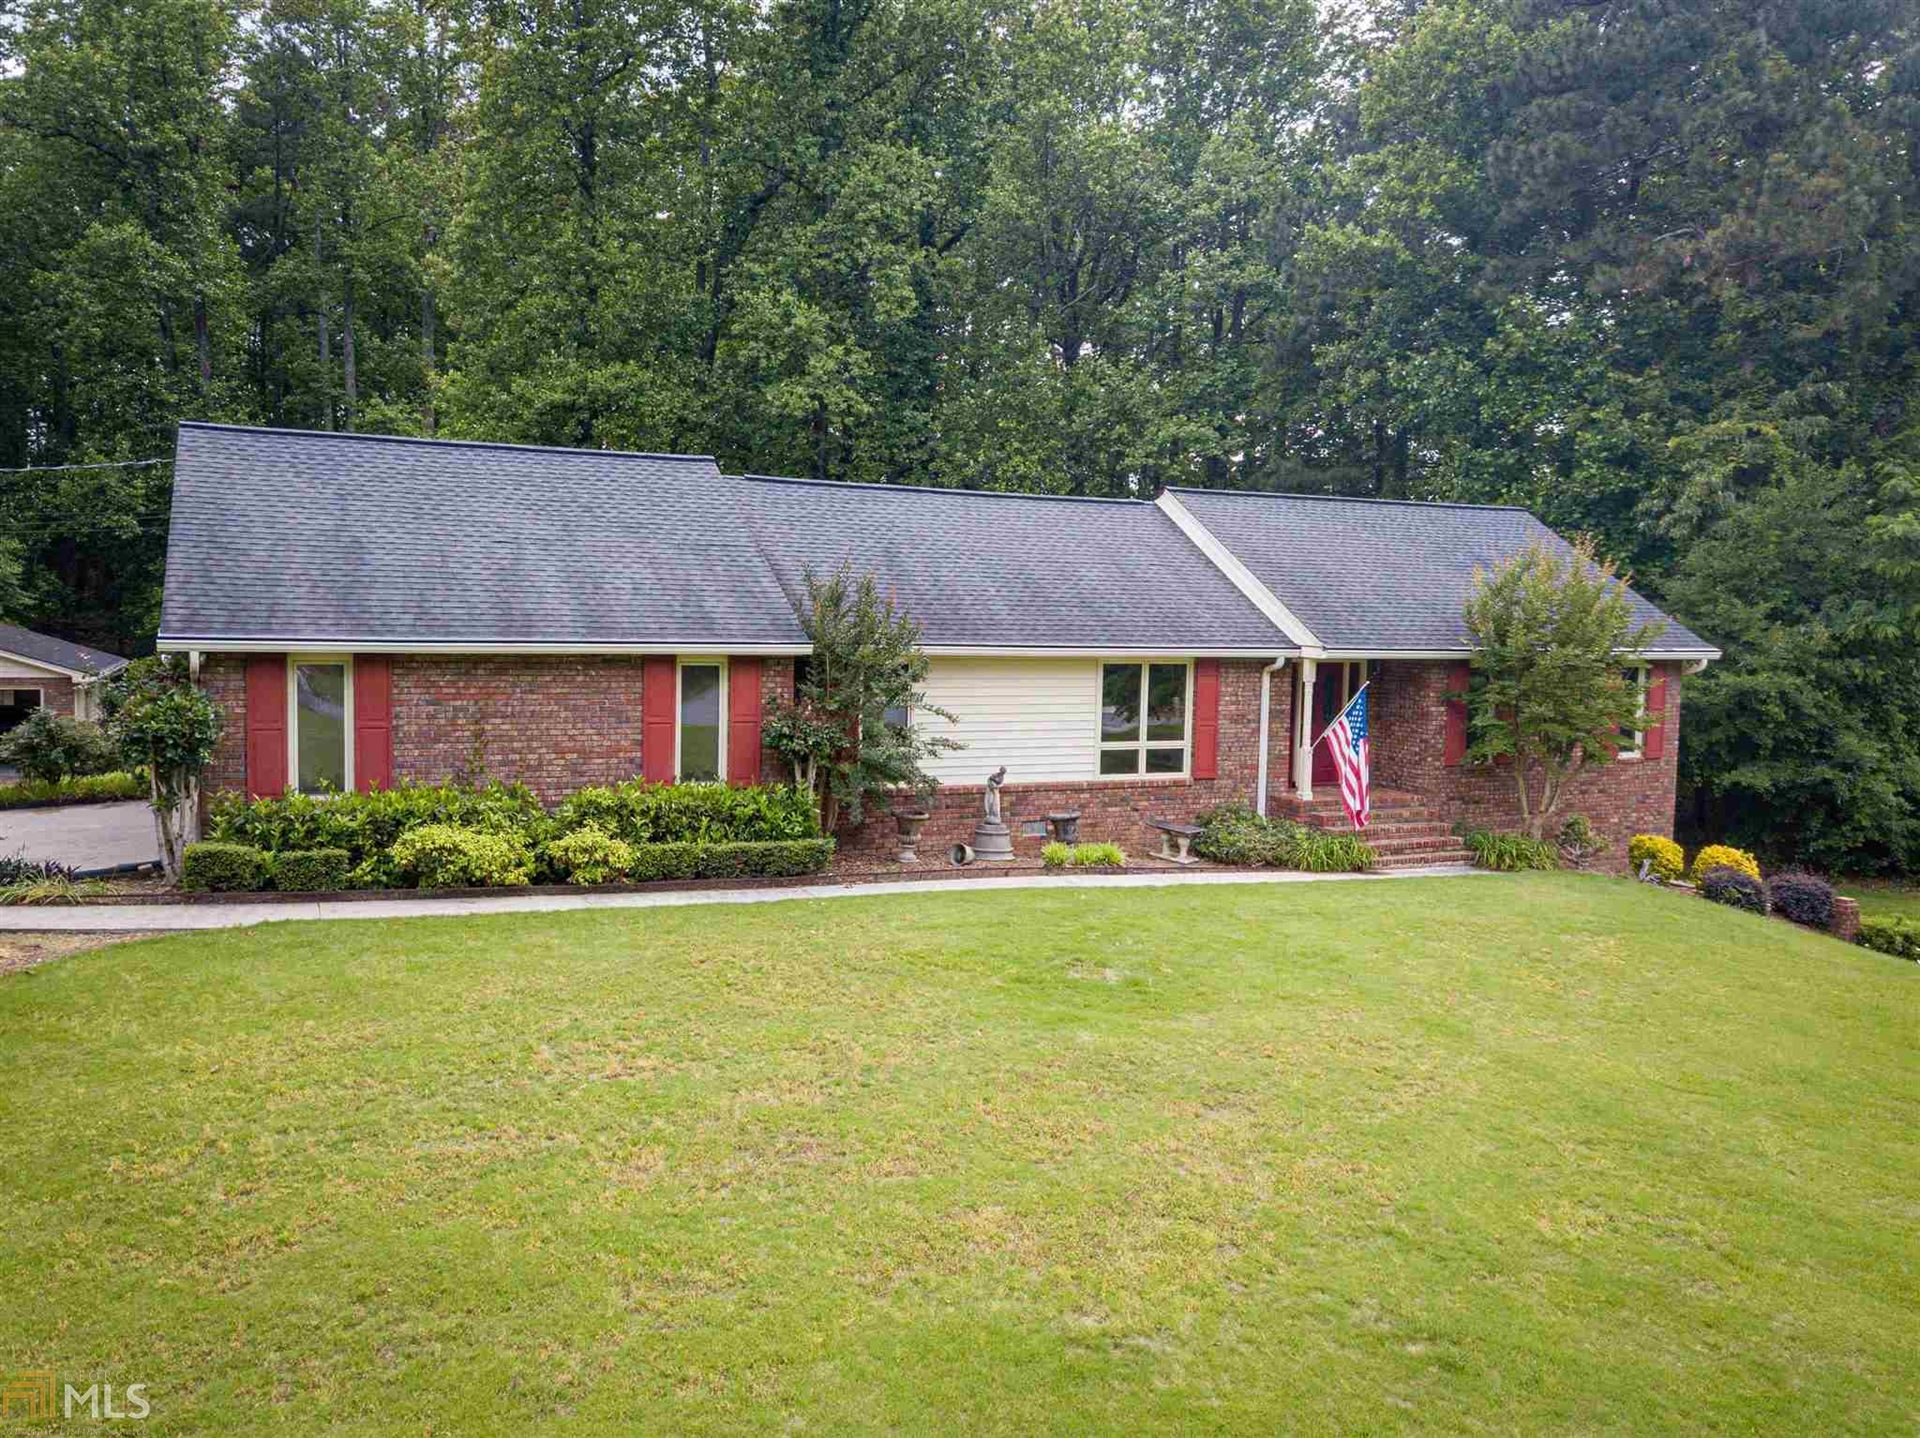 3467 Samantha Dr, Buford, GA 30519 - MLS#: 8792129